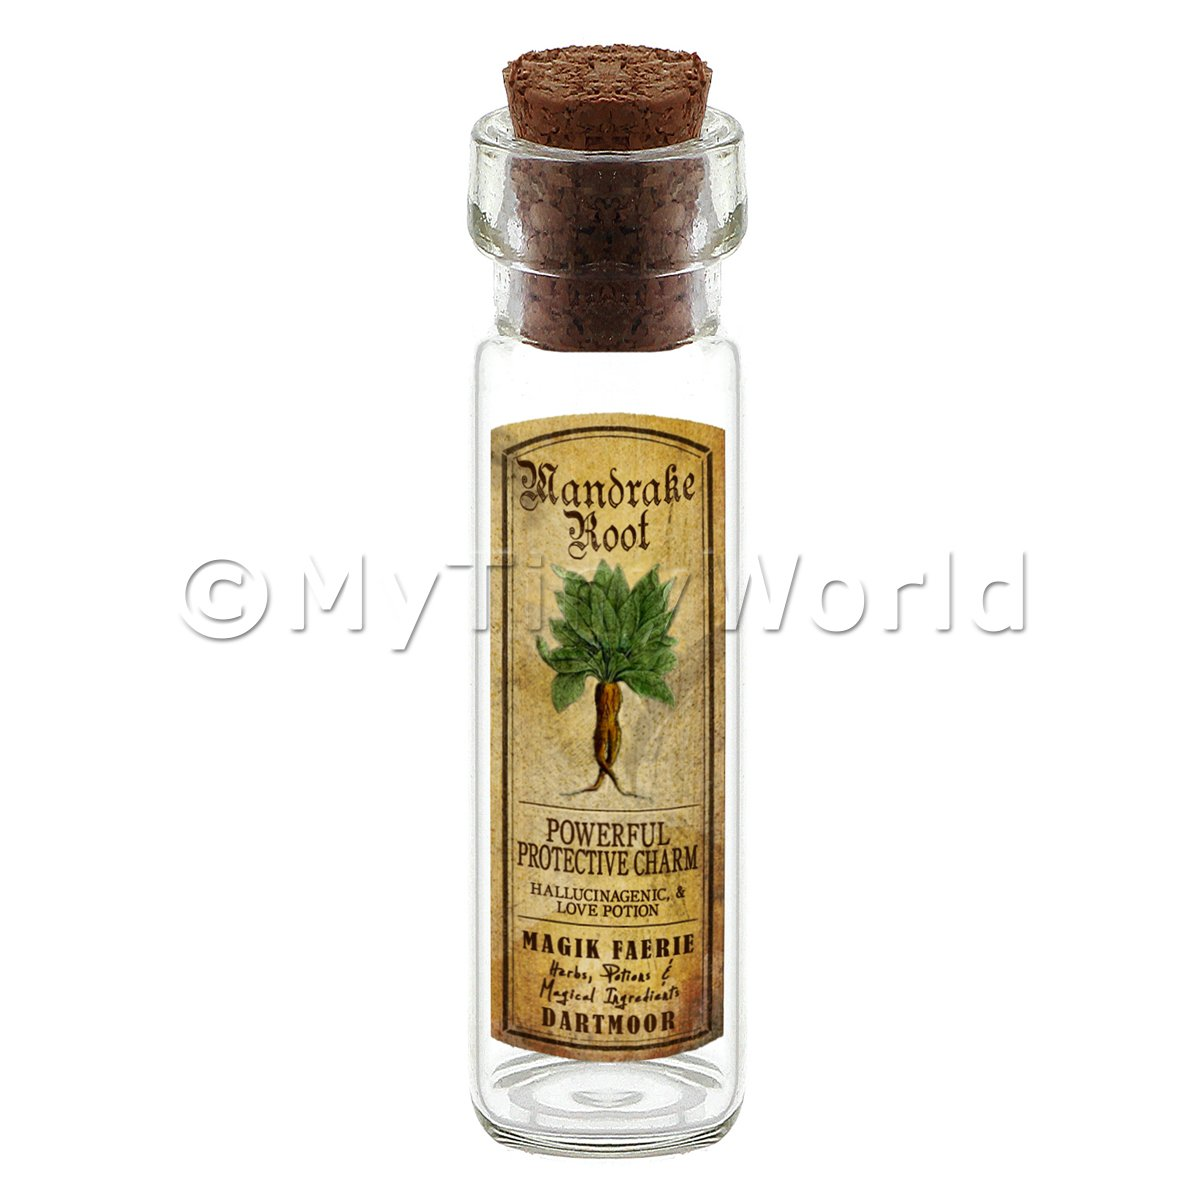 Dolls House Apothecary Mandrake Herb Long Colour Label And Bottle